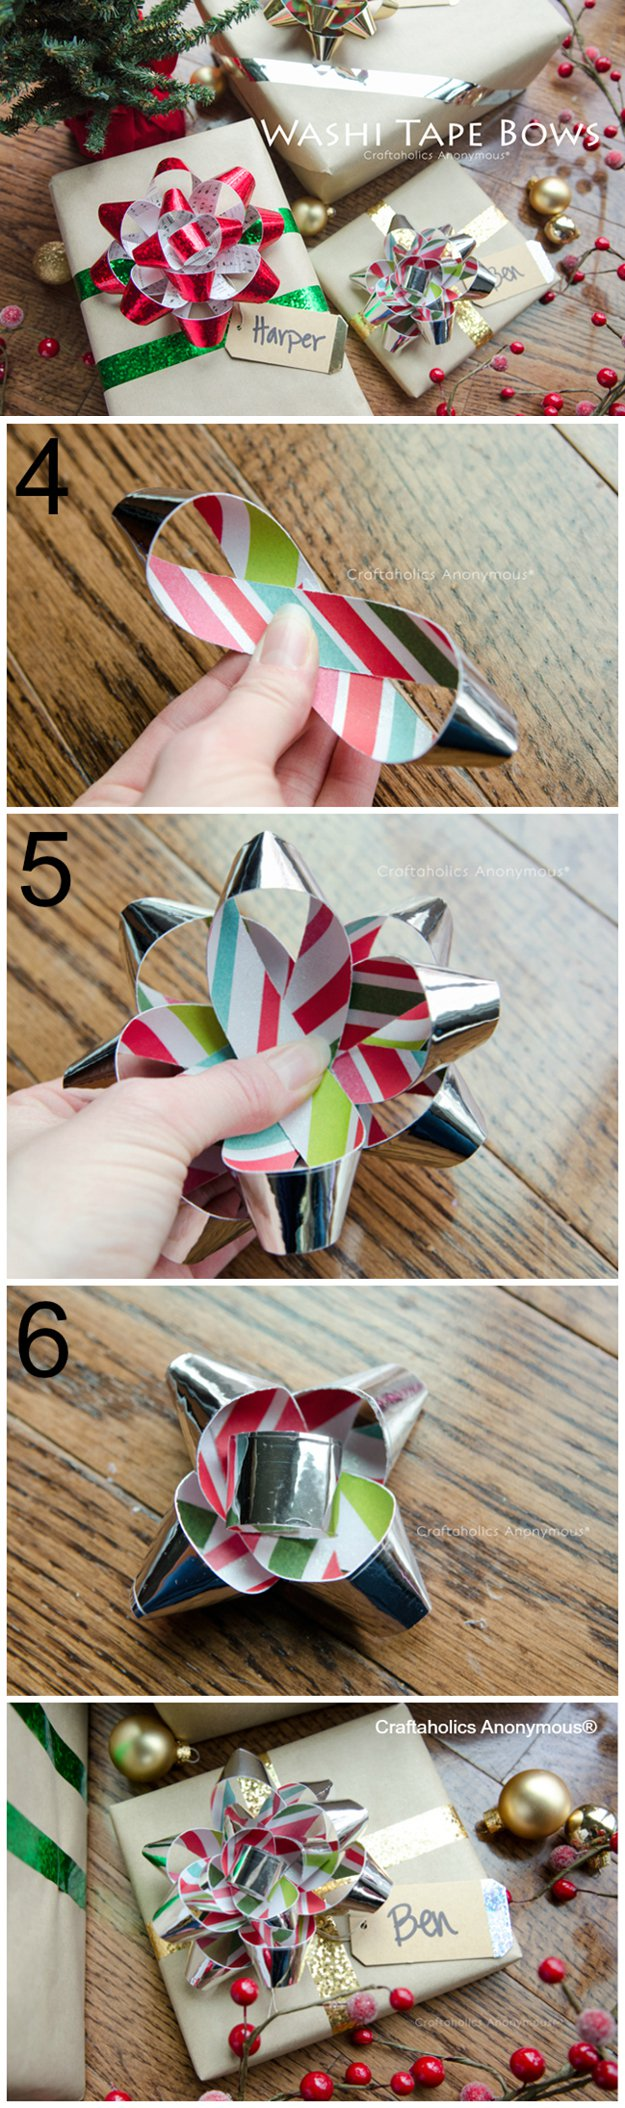 Washi Tape Crafts - Washi Tape Gift Bows Tutorial - Wall Art, Frames, Cards, Pencils, Room Decor and DIY Gifts, Back To School Supplies - Creative, Fun Craft Ideas for Teens, Tweens and Teenagers - Step by Step Tutorials and Instructions #washitape #crafts #cheapcrafts #teencrafts